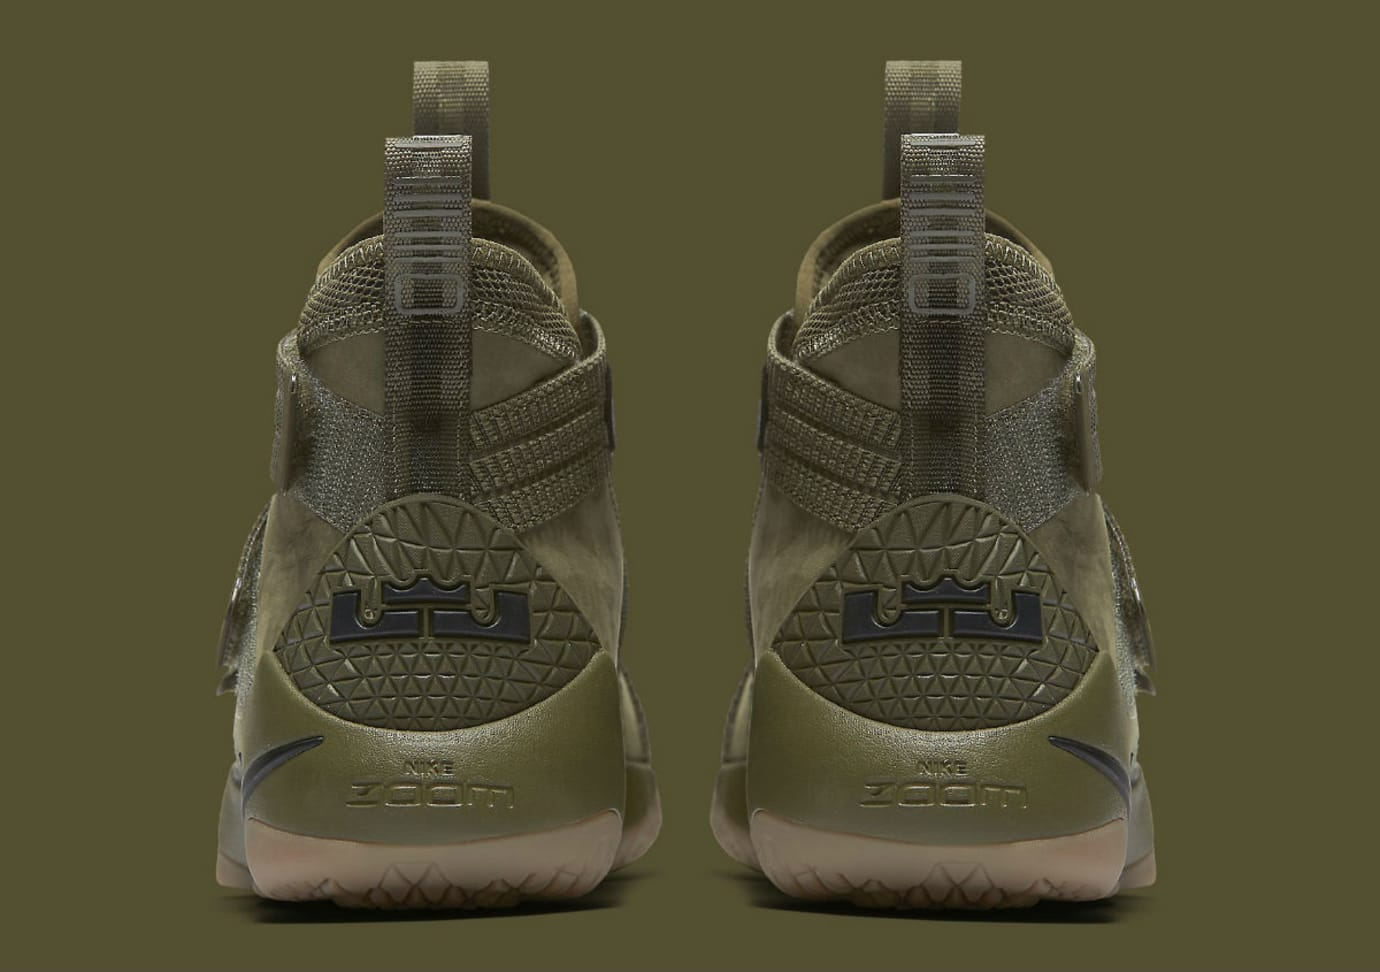 188fe876bc2 Nike LeBron Soldier 11 SFG Olive Release Date Heel 897646-200